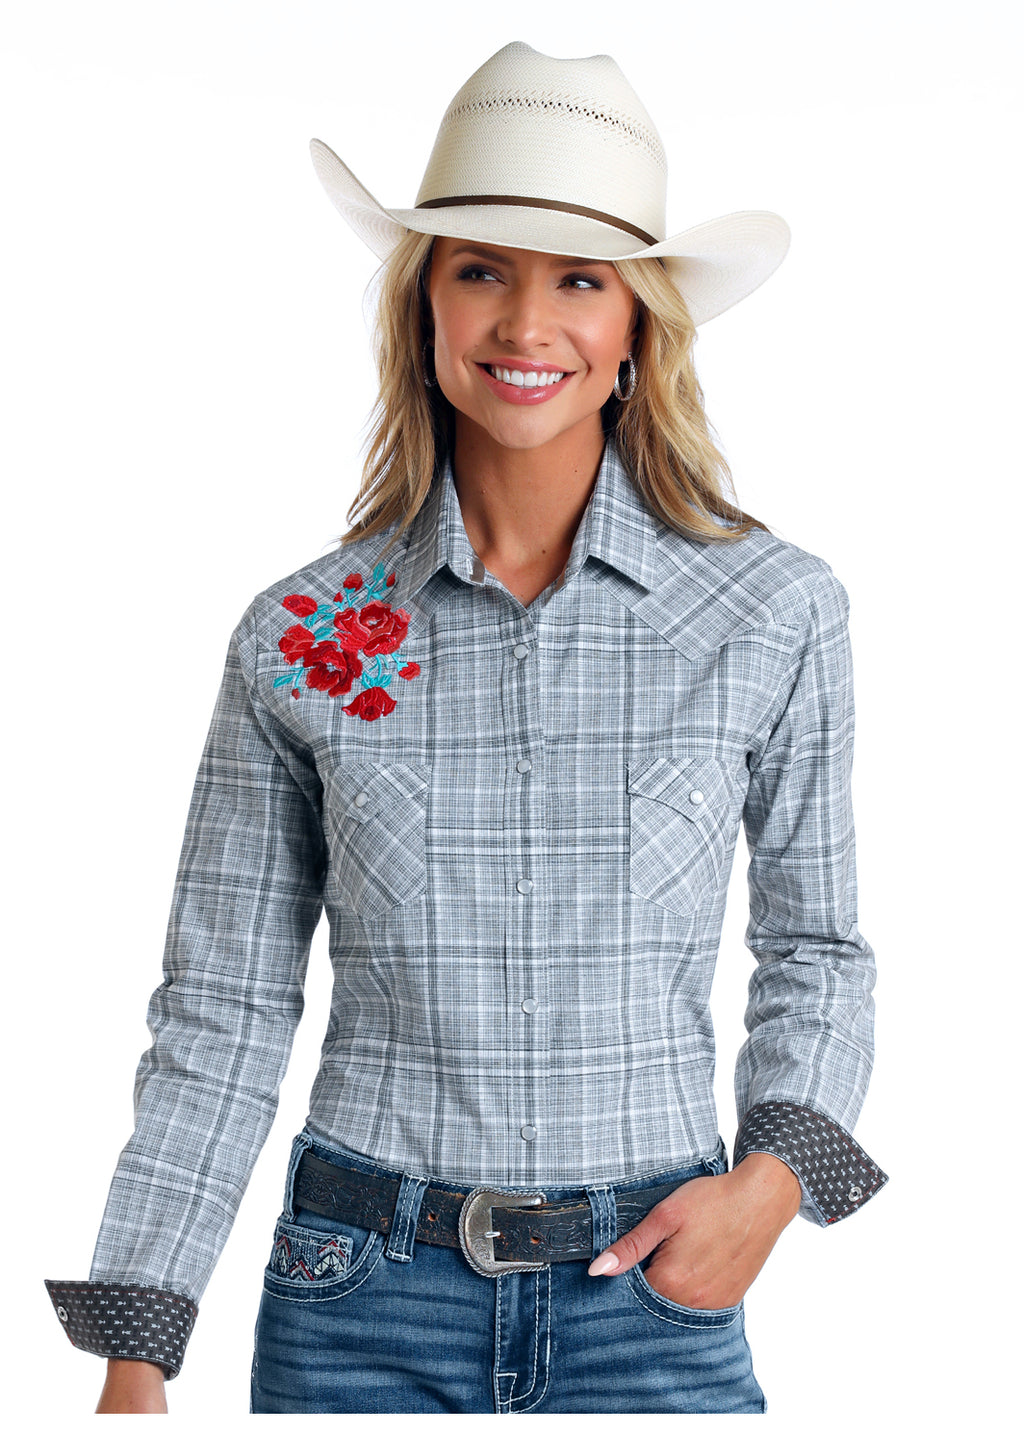 Panhandle Long Sleeved Shirt (R4S5764)